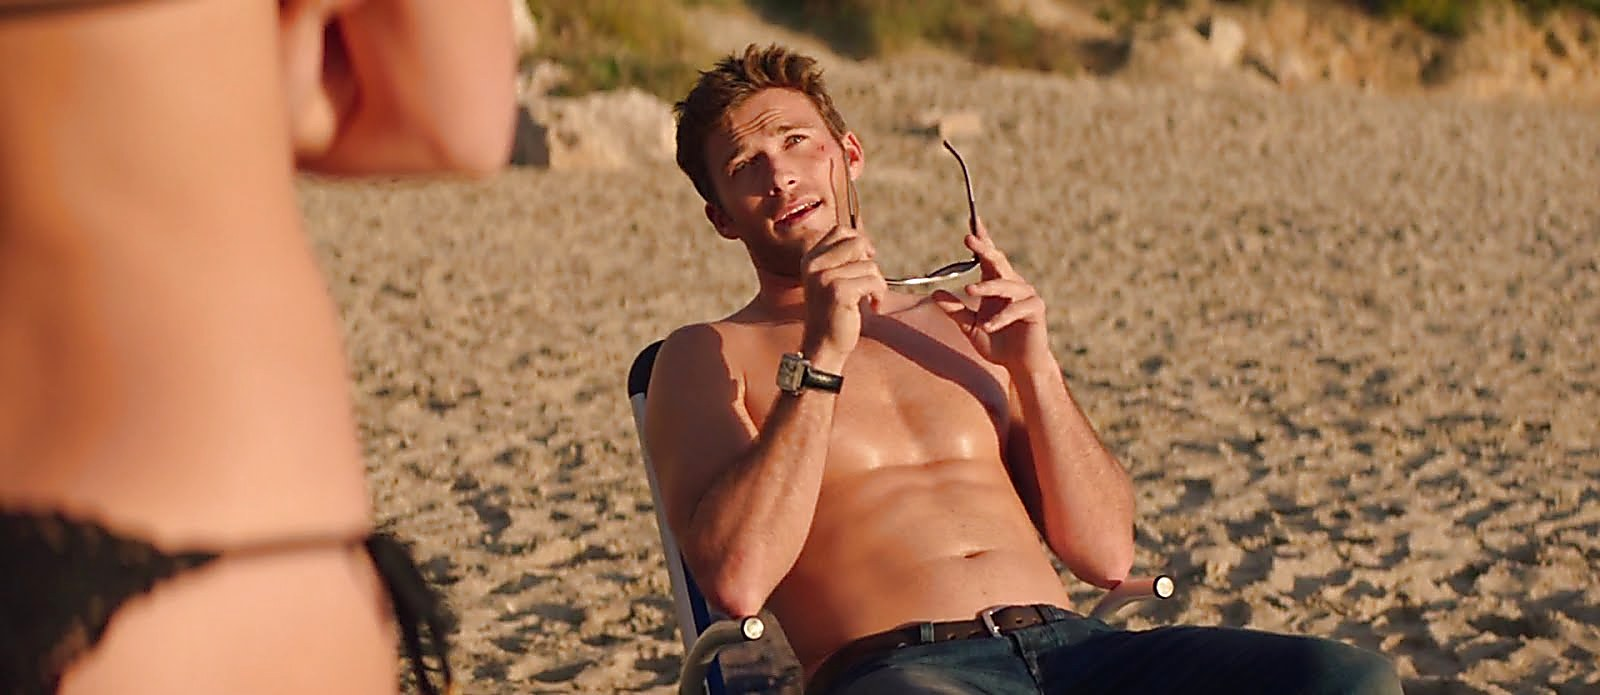 Scott Eastwood latest sexy shirtless scene October 8, 2017, 12pm